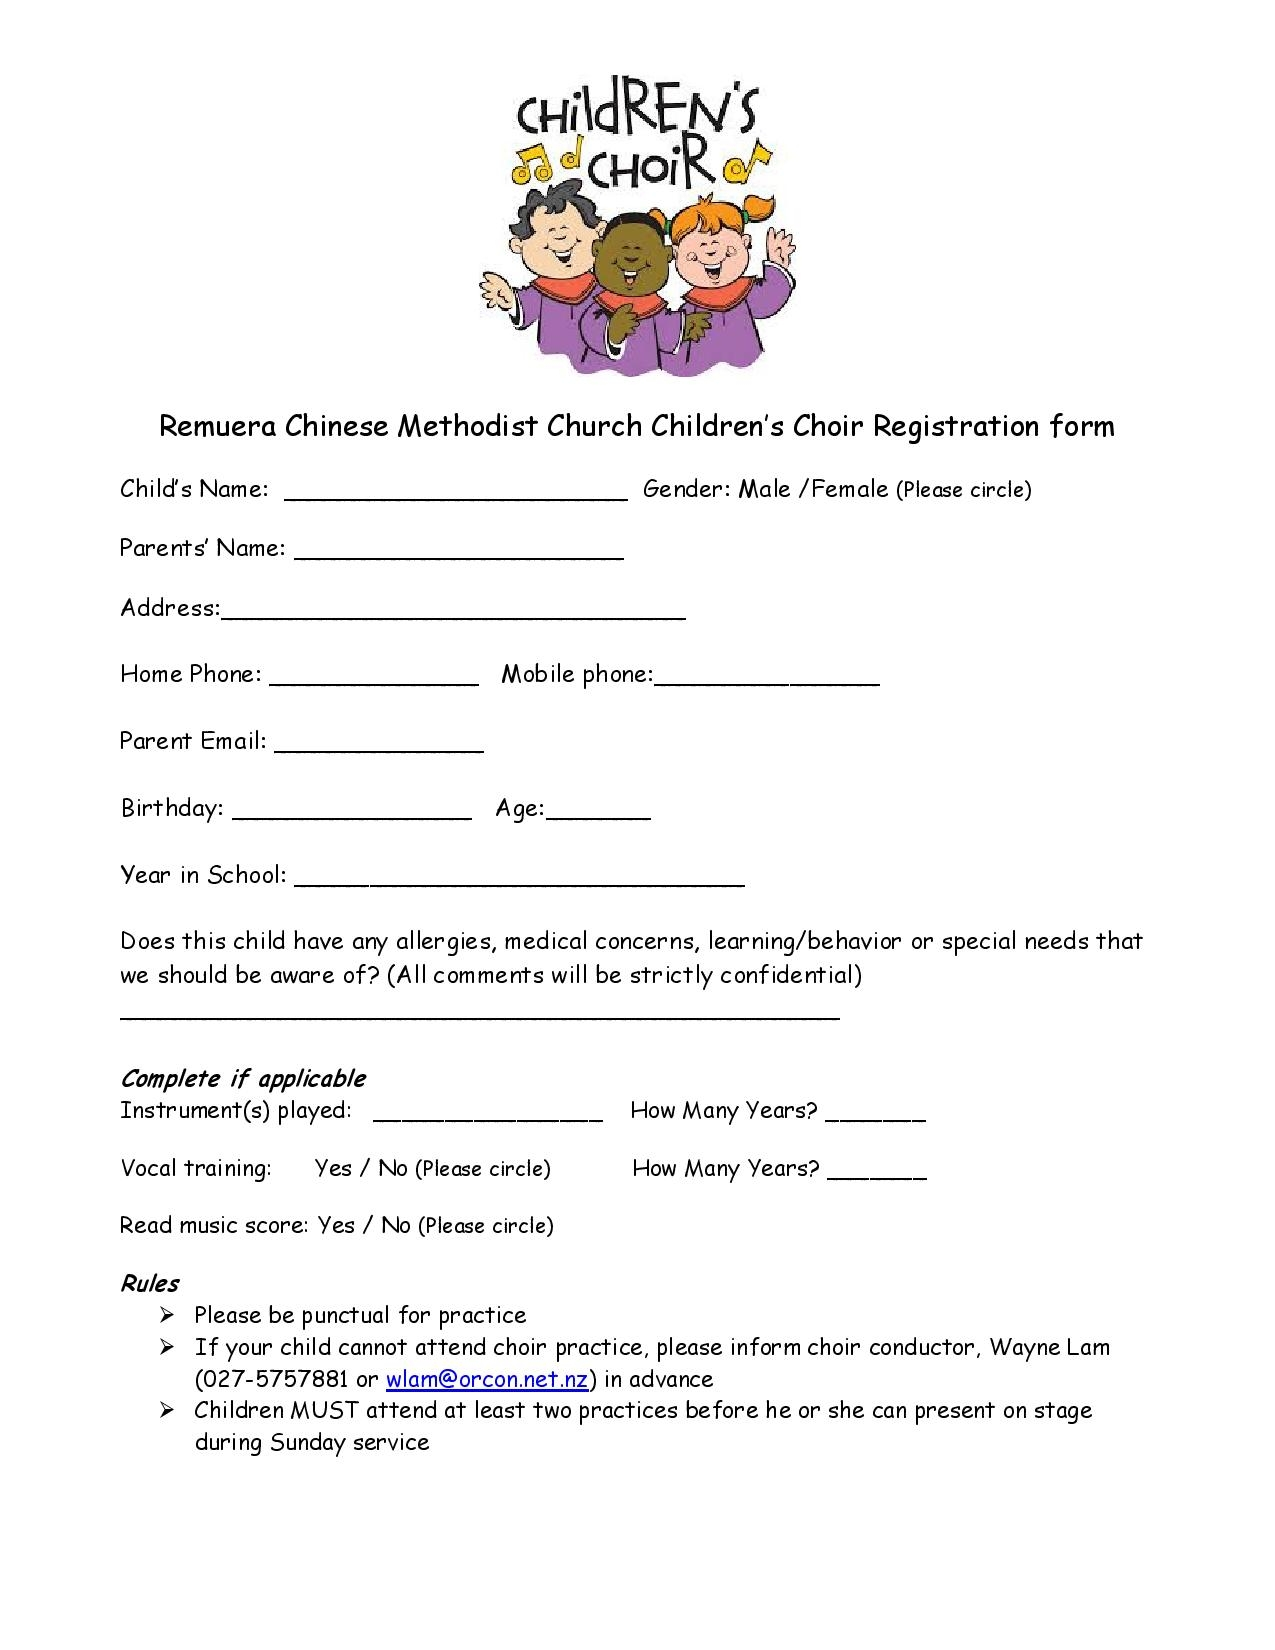 RCMC Children Choir Registration form.JPG